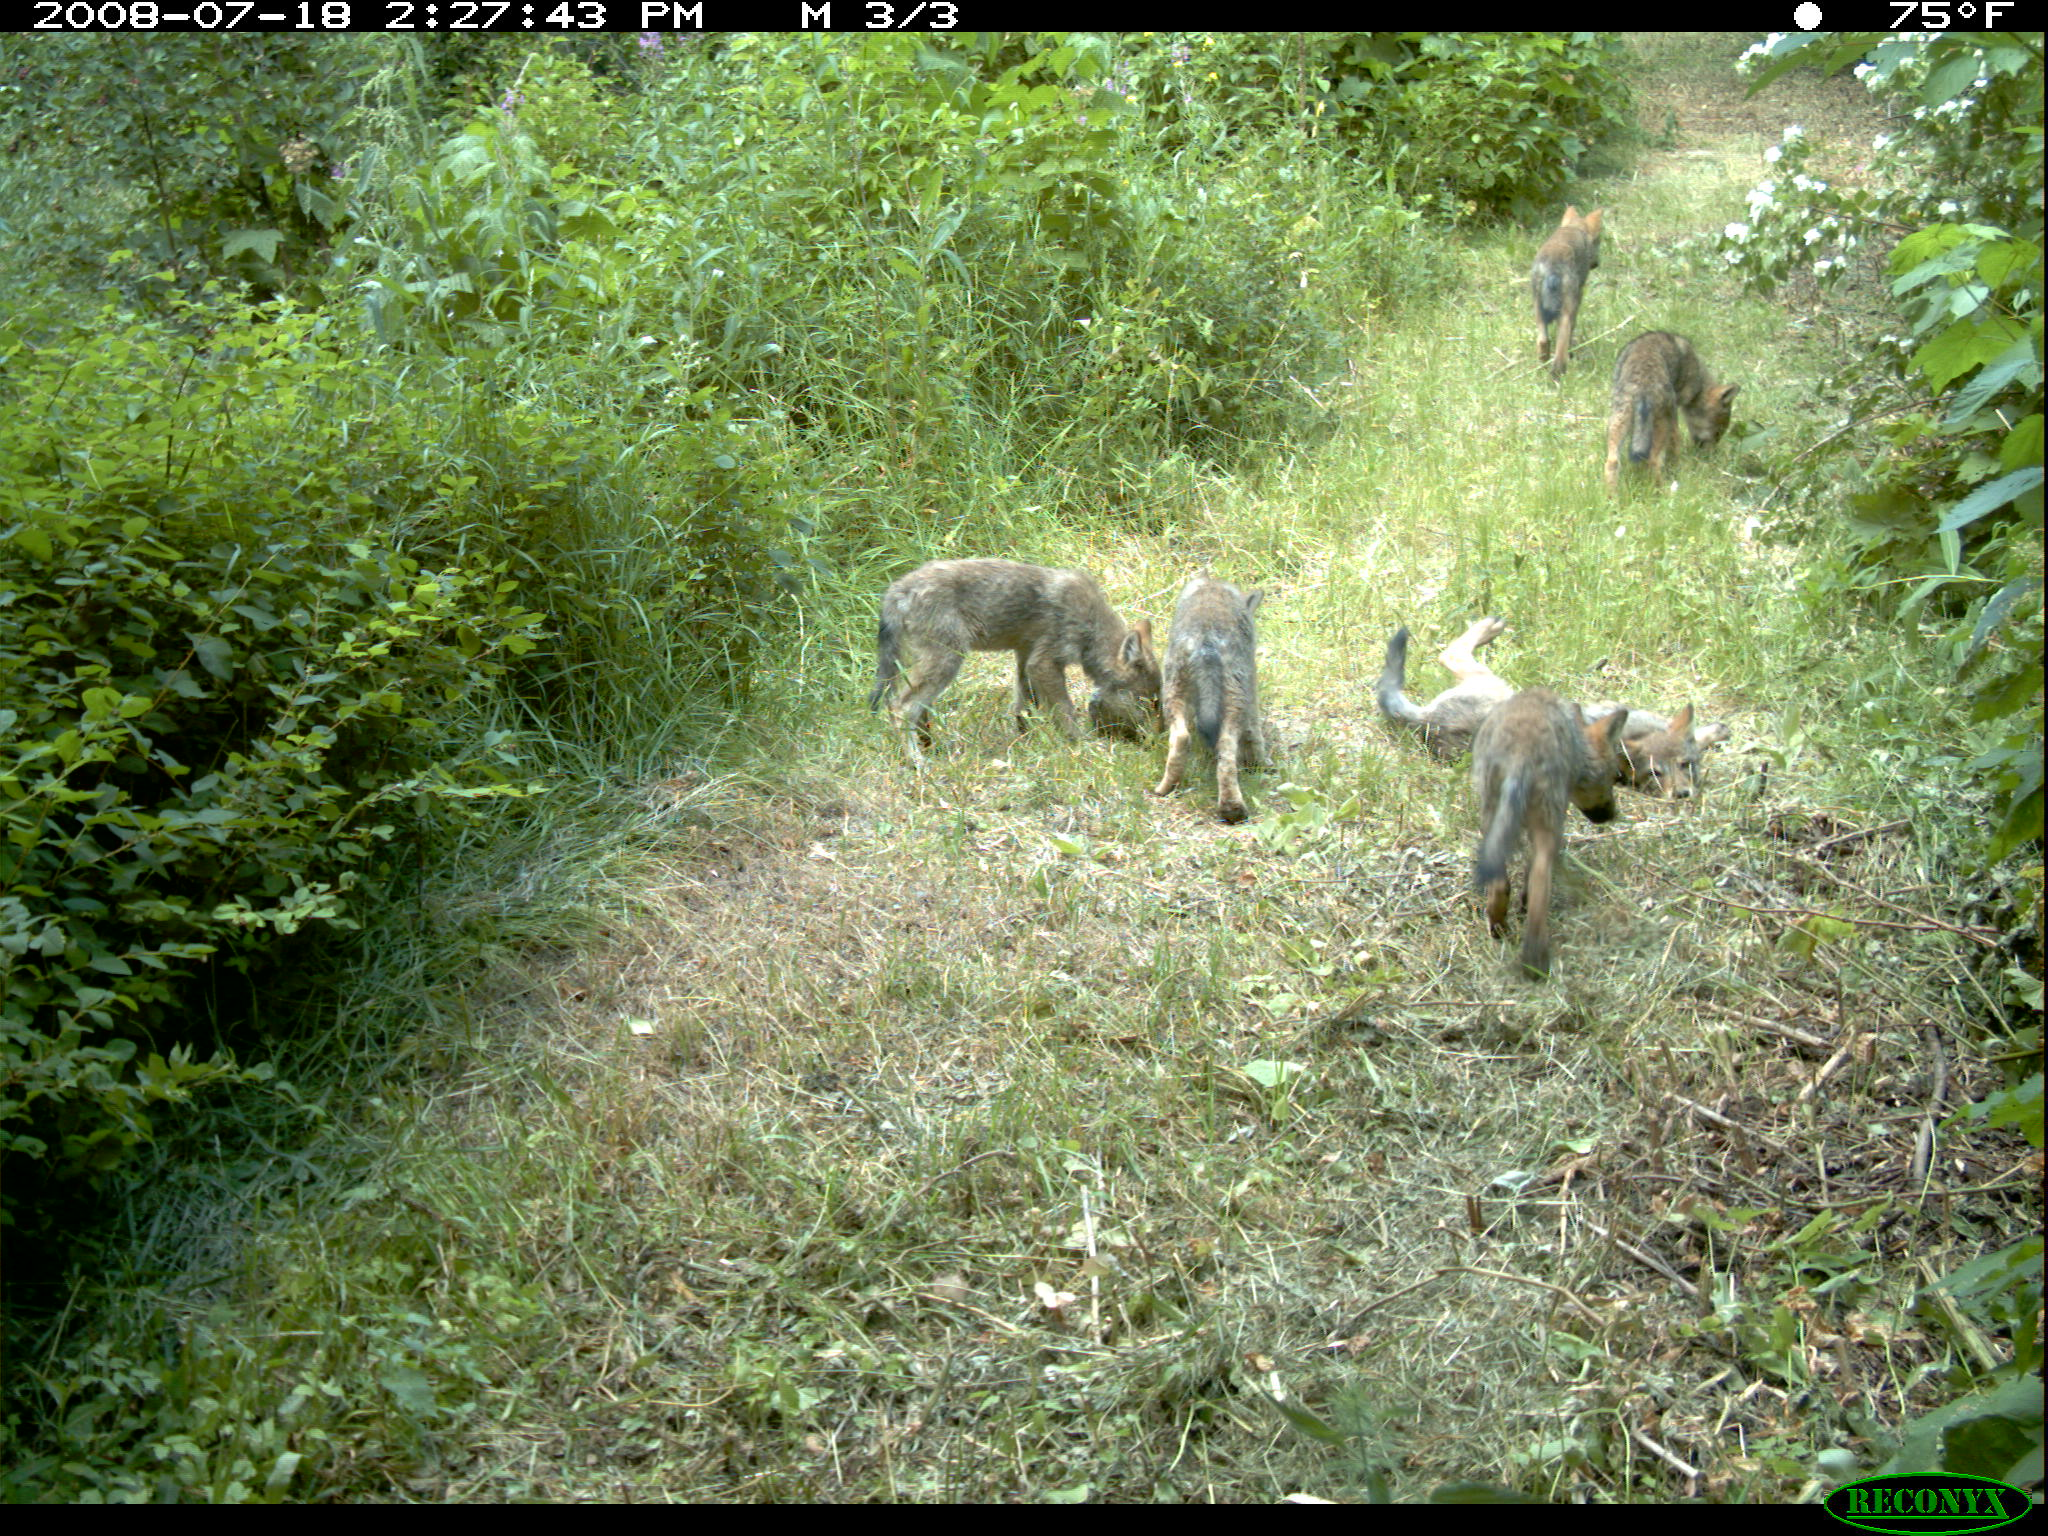 Wolf pack confirmed in Washington State.